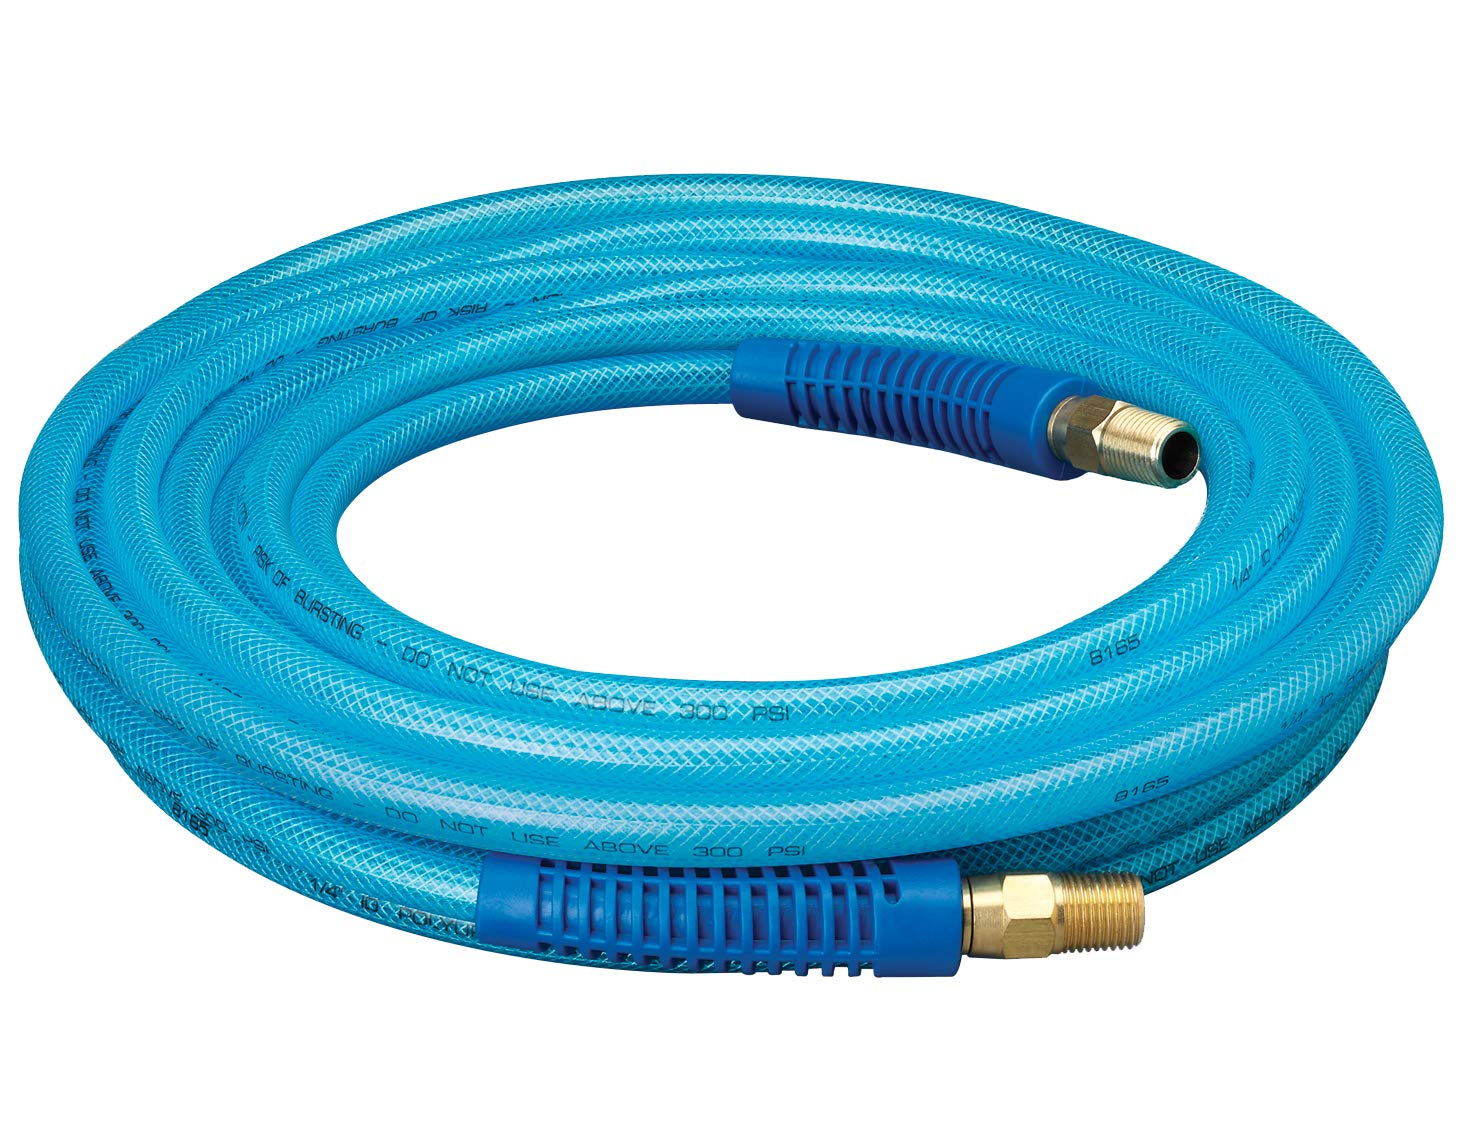 """Plews & Edelmann Amflo 12-25E Polyurethane Air Hose - Non-marring, Smooth Finish, Easy to carry, Lightweight, Cold Weather Flexible, Great Indoors or Out, 1/4"""" X 25', Blue, 25 ft: Air Tool Hoses: Industrial & Scientific"""